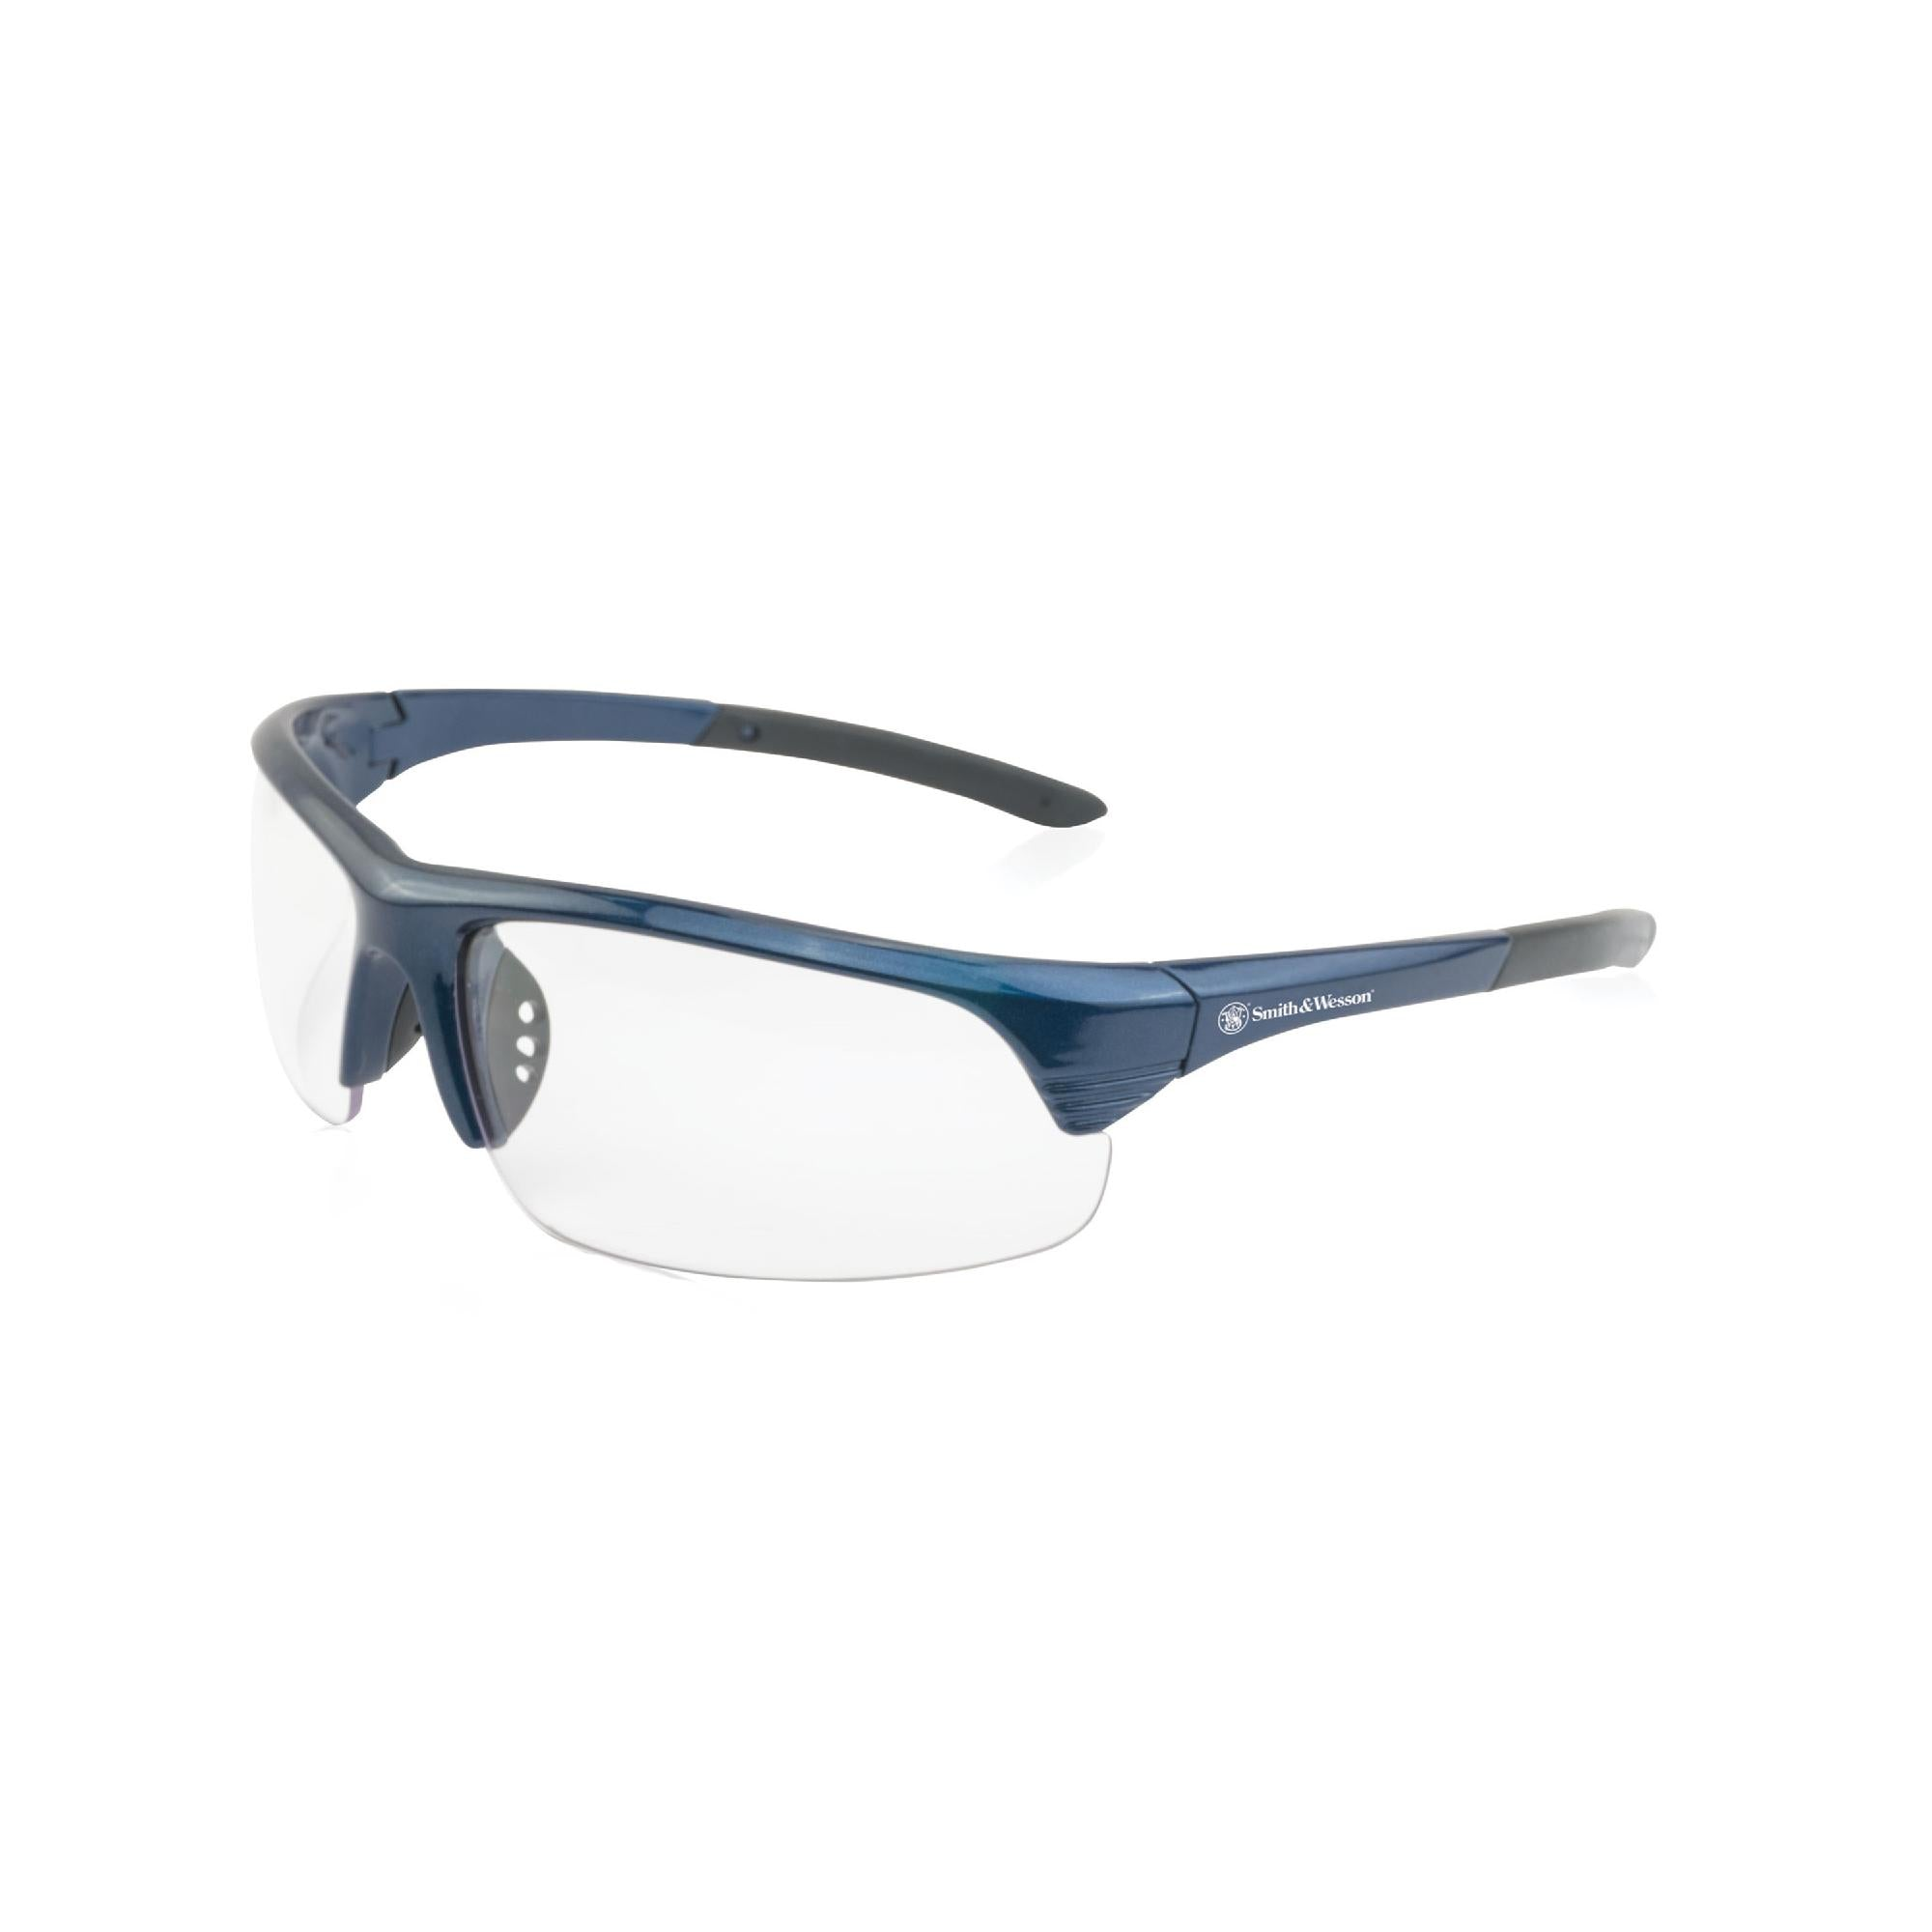 Corporal Shooting Glasses - Blue Frame, Clear Lens